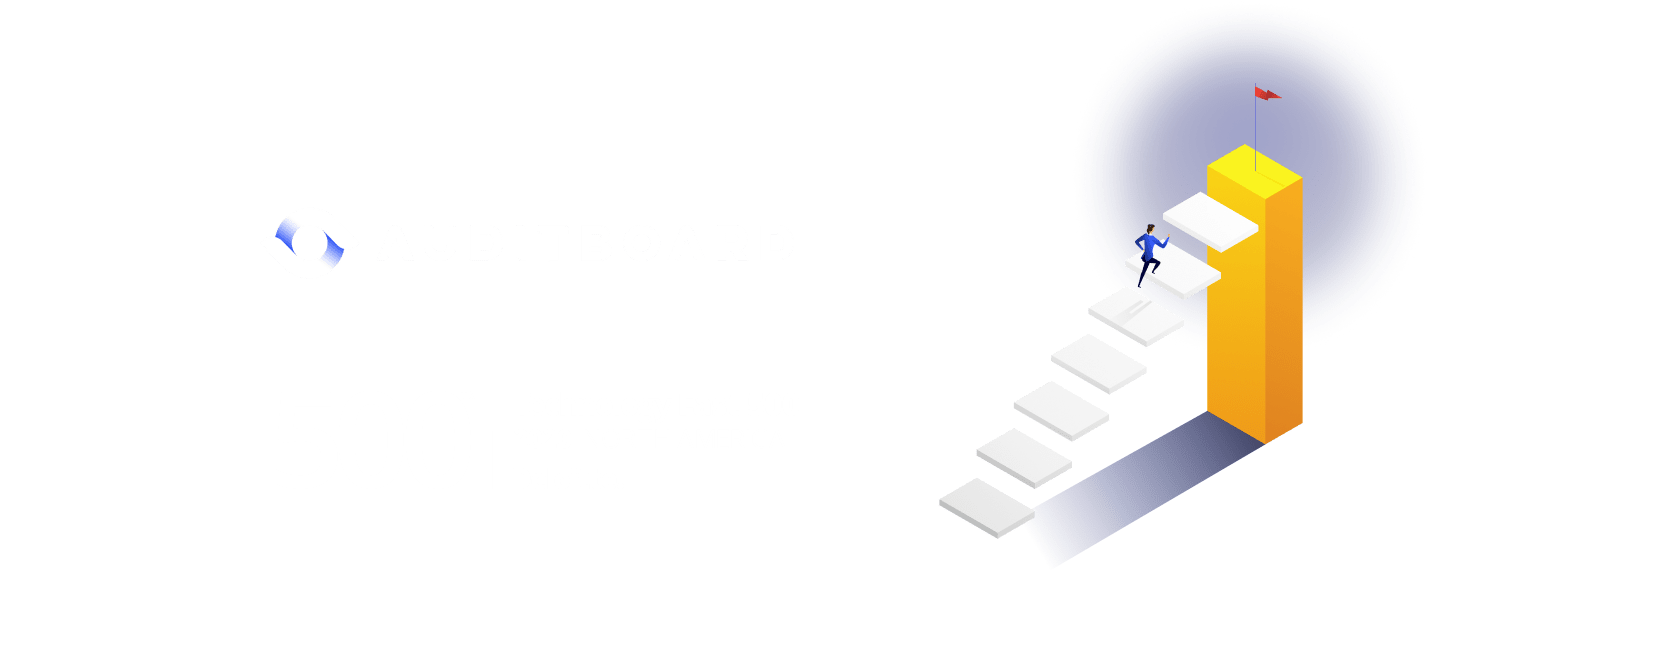 AuditBoard Named to Deloitte's Fast 500™ List For Second Year in a Row